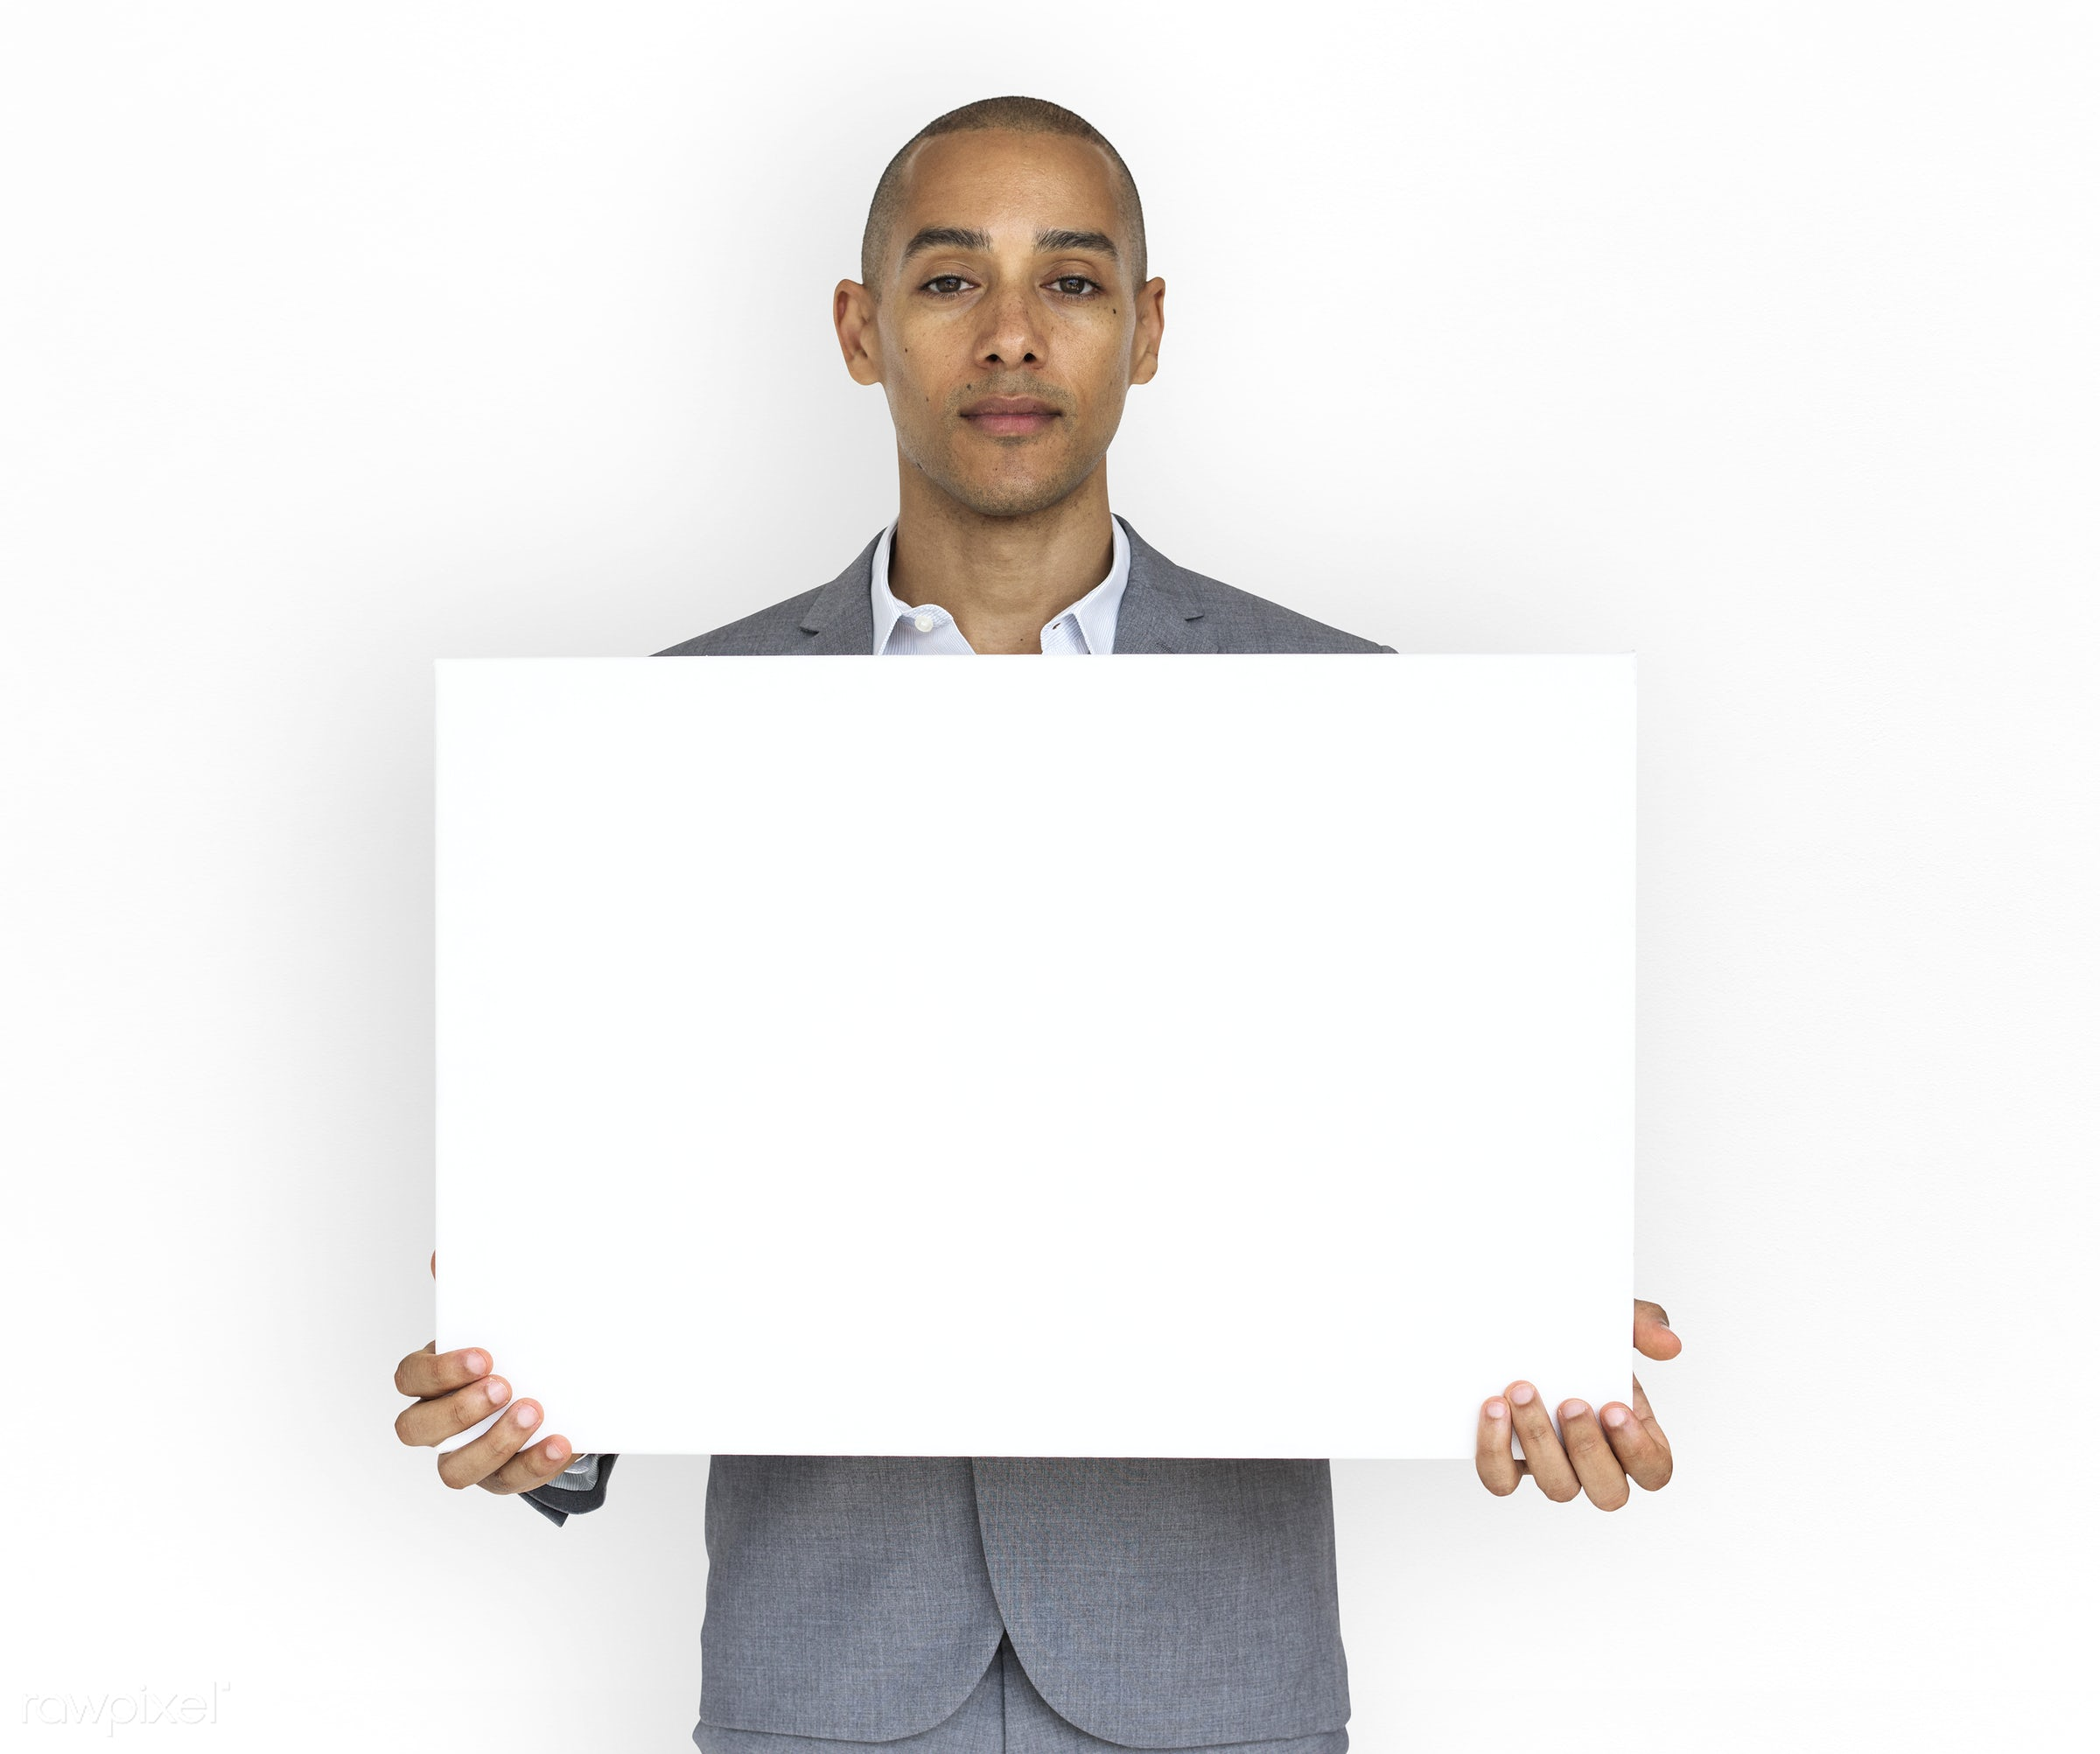 expression, studio, copy space, person, holding, isolated on white, people, business, placard, businessman, mixed race, man...